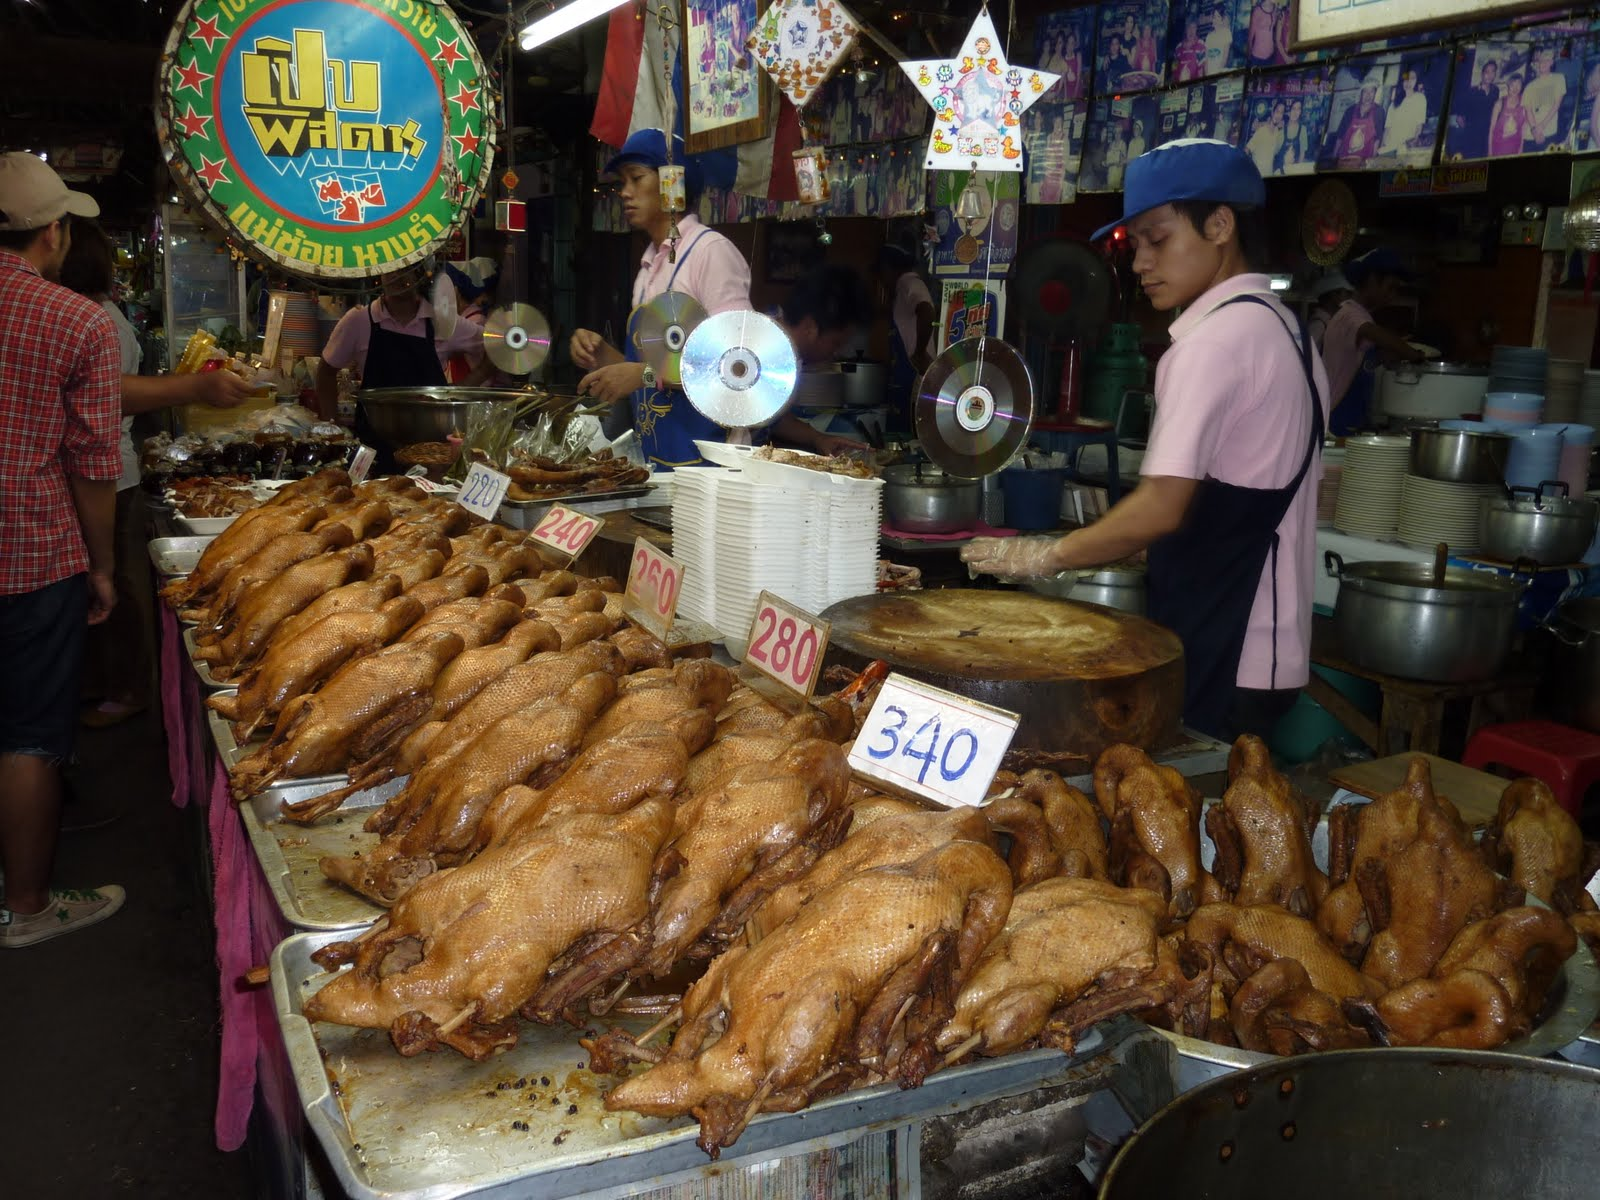 Nakhon Pathom Thailand  city images : kbguy: Nakhon Pathom Cheap And Good Food in Thailand